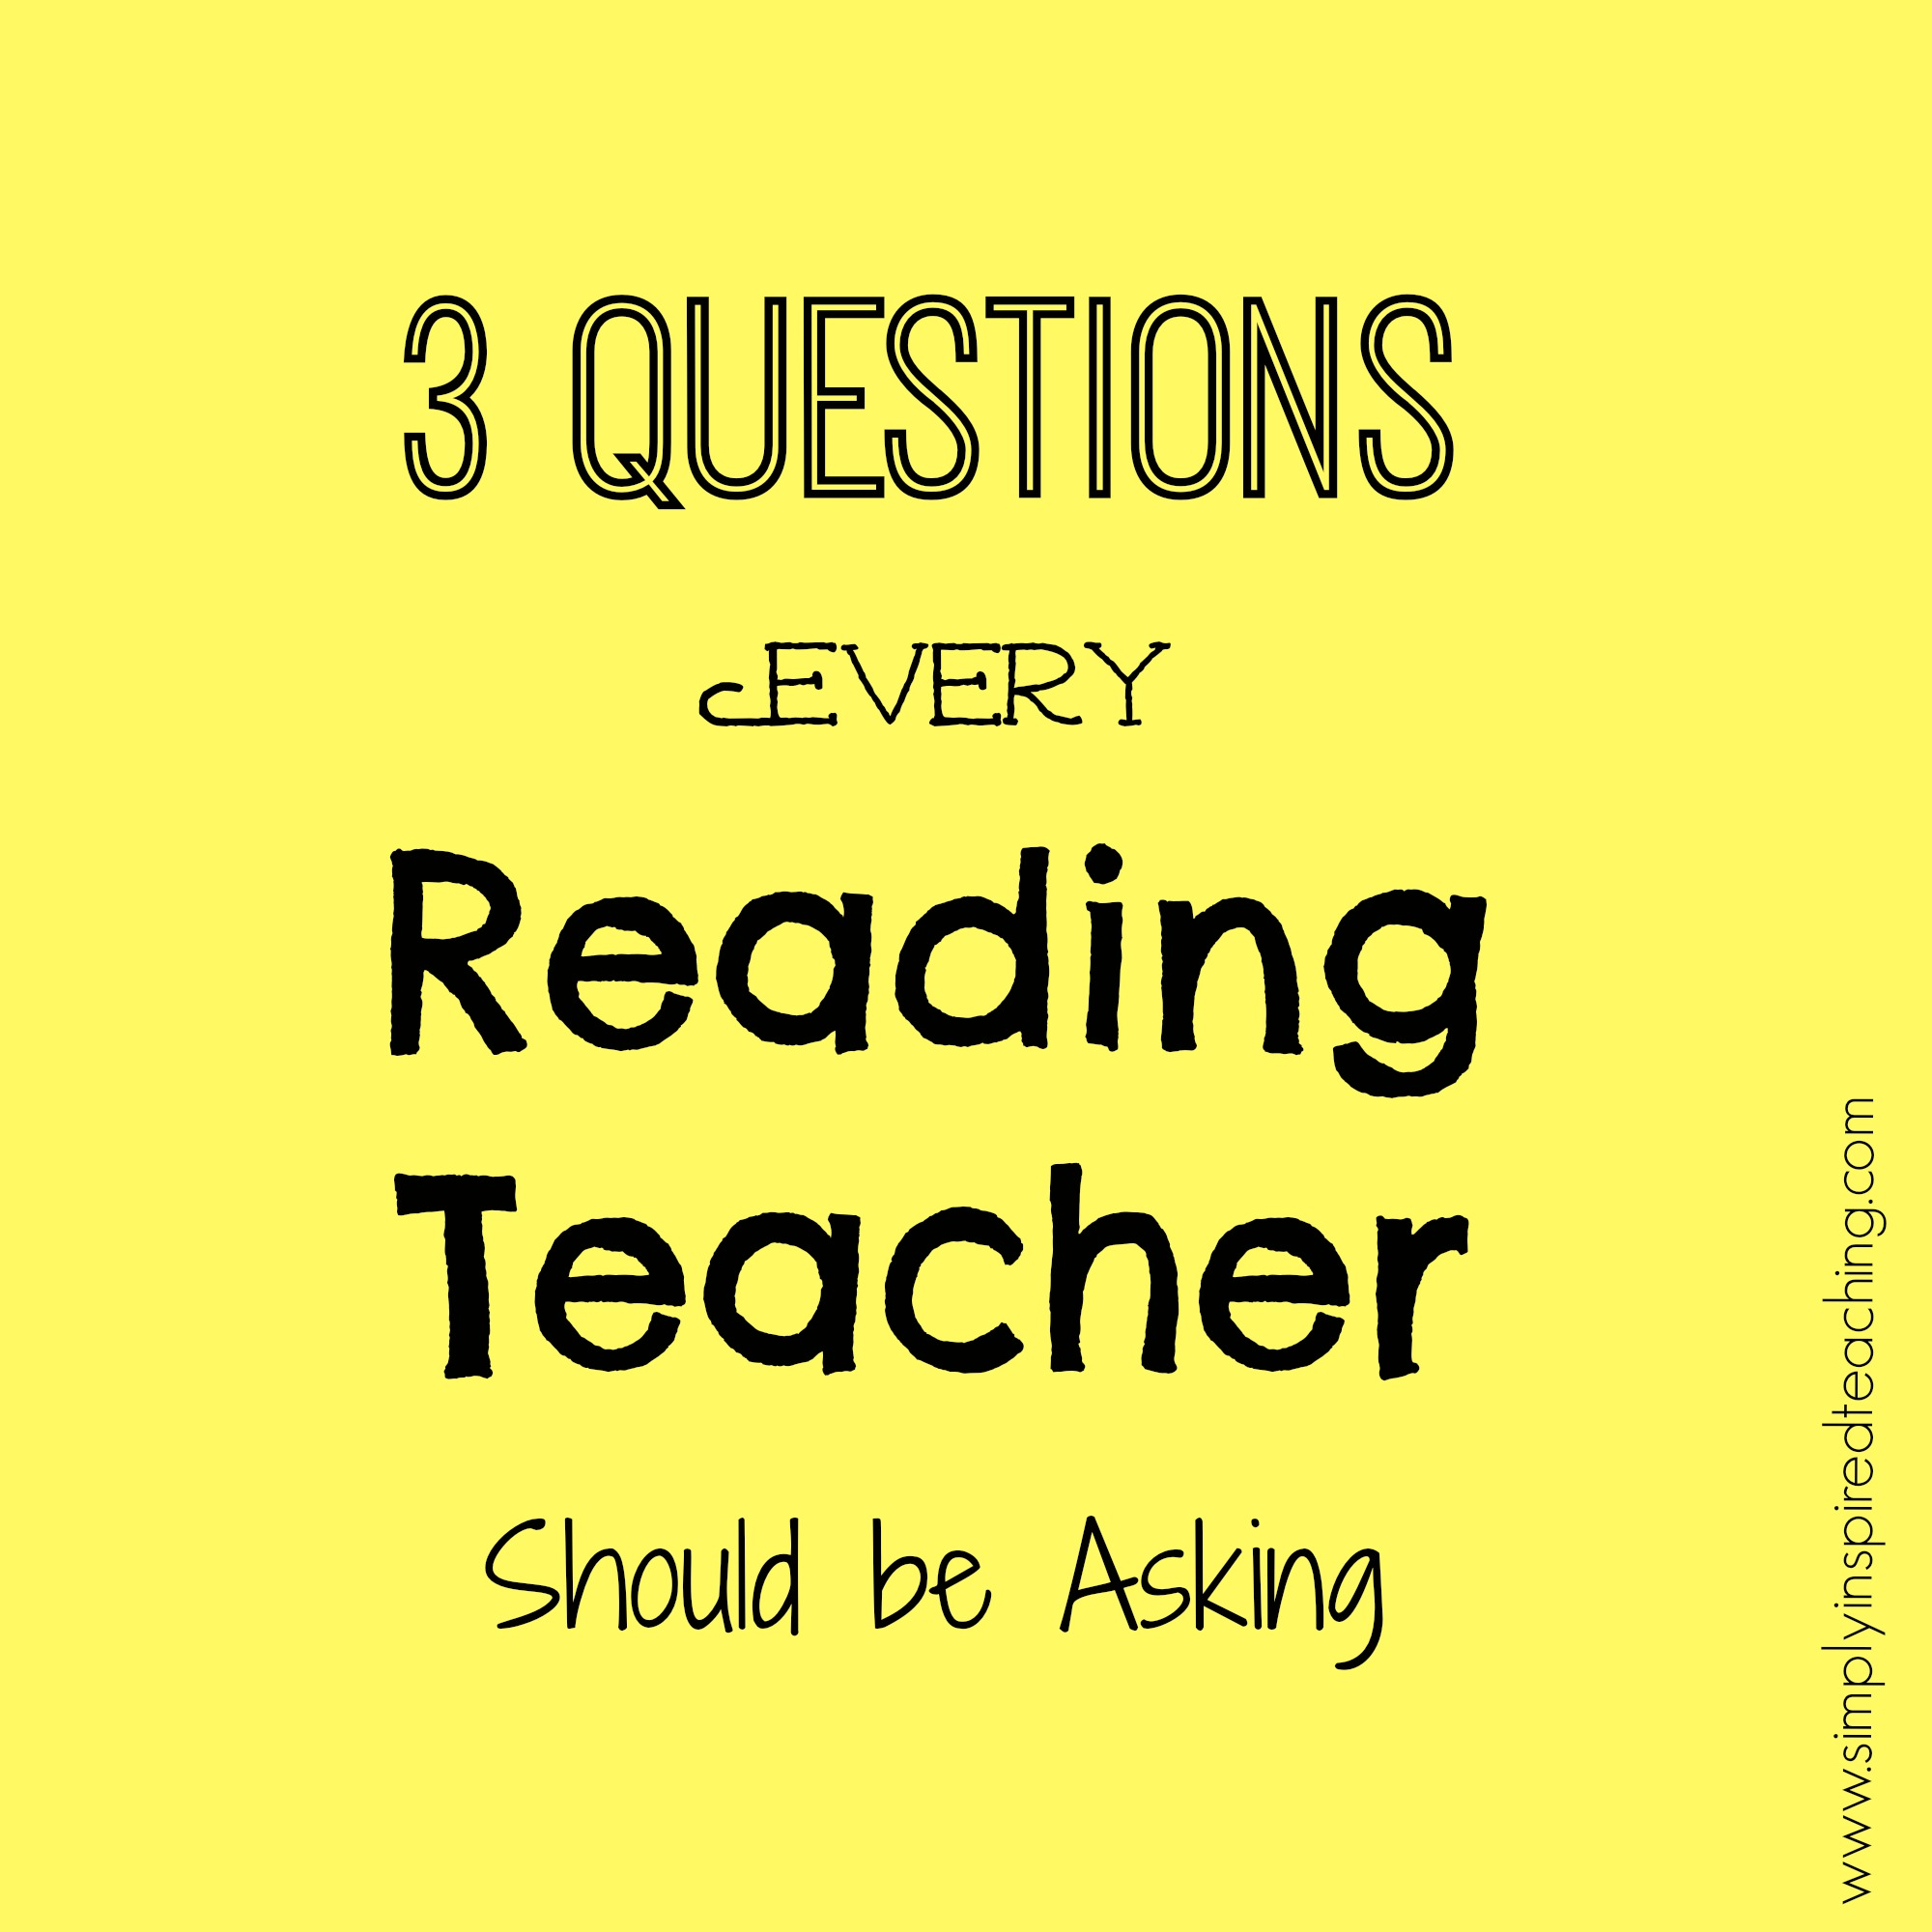 3 questions every reading teacher should be asking